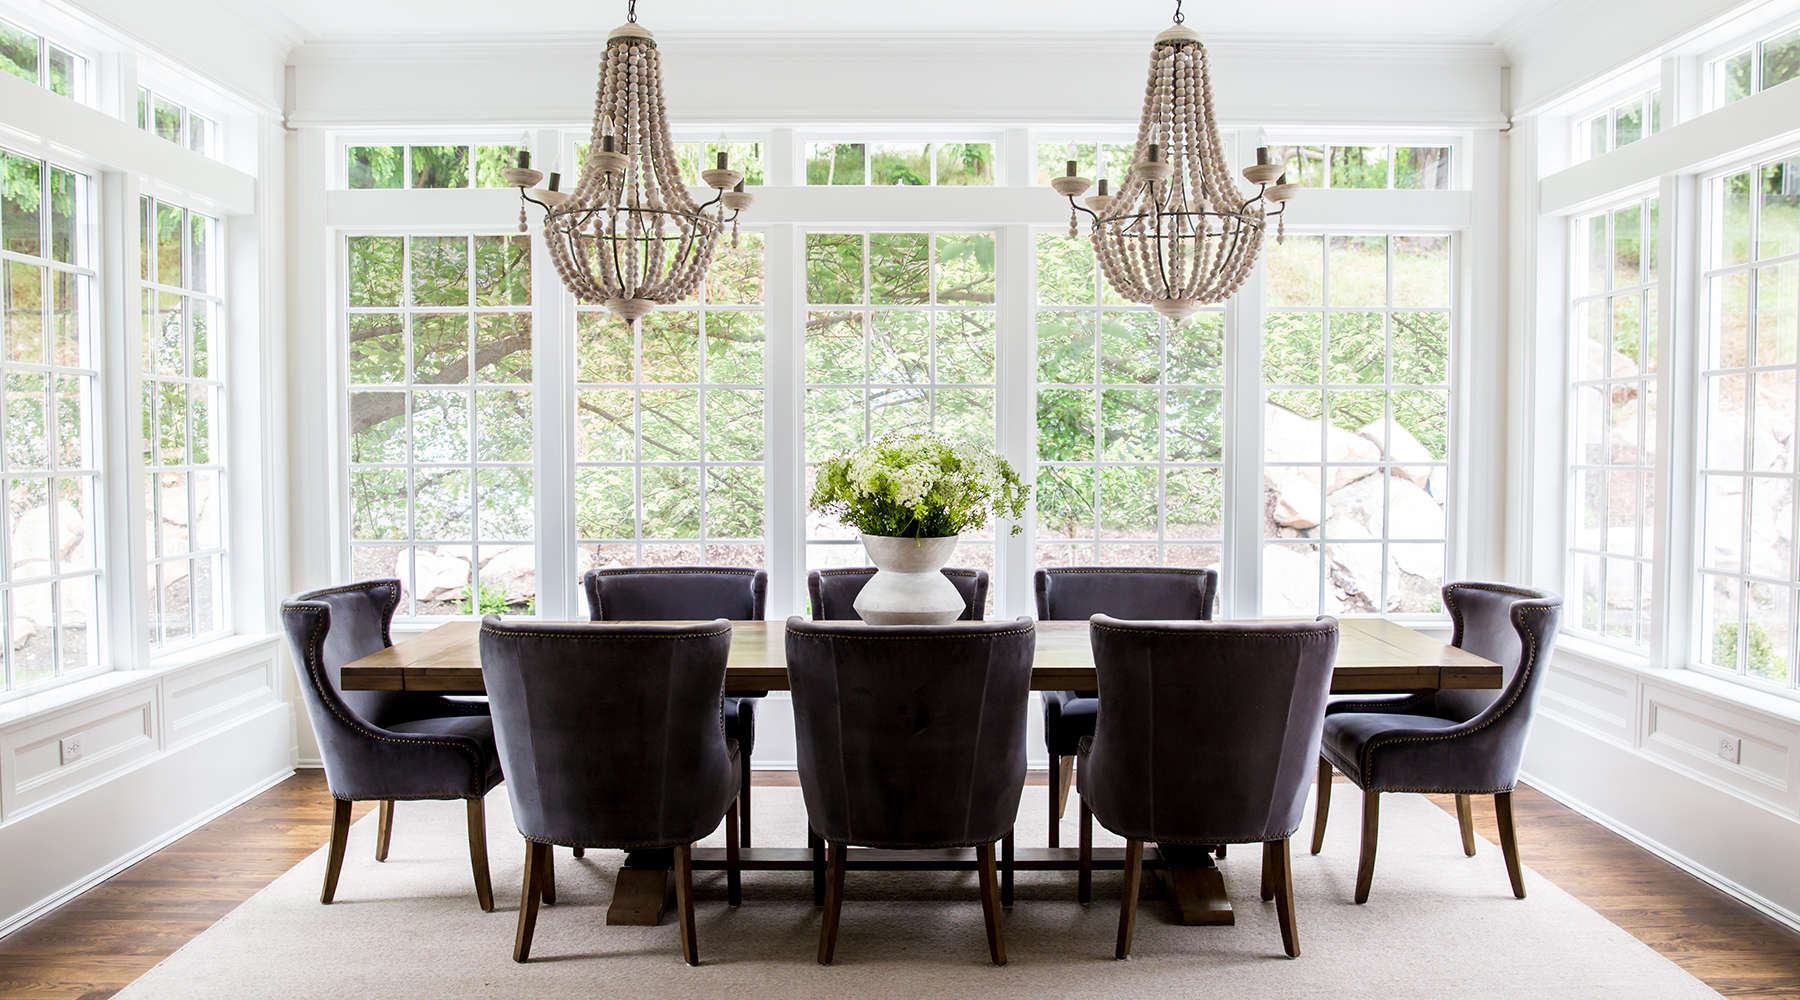 Hamptons Dining Room with a View